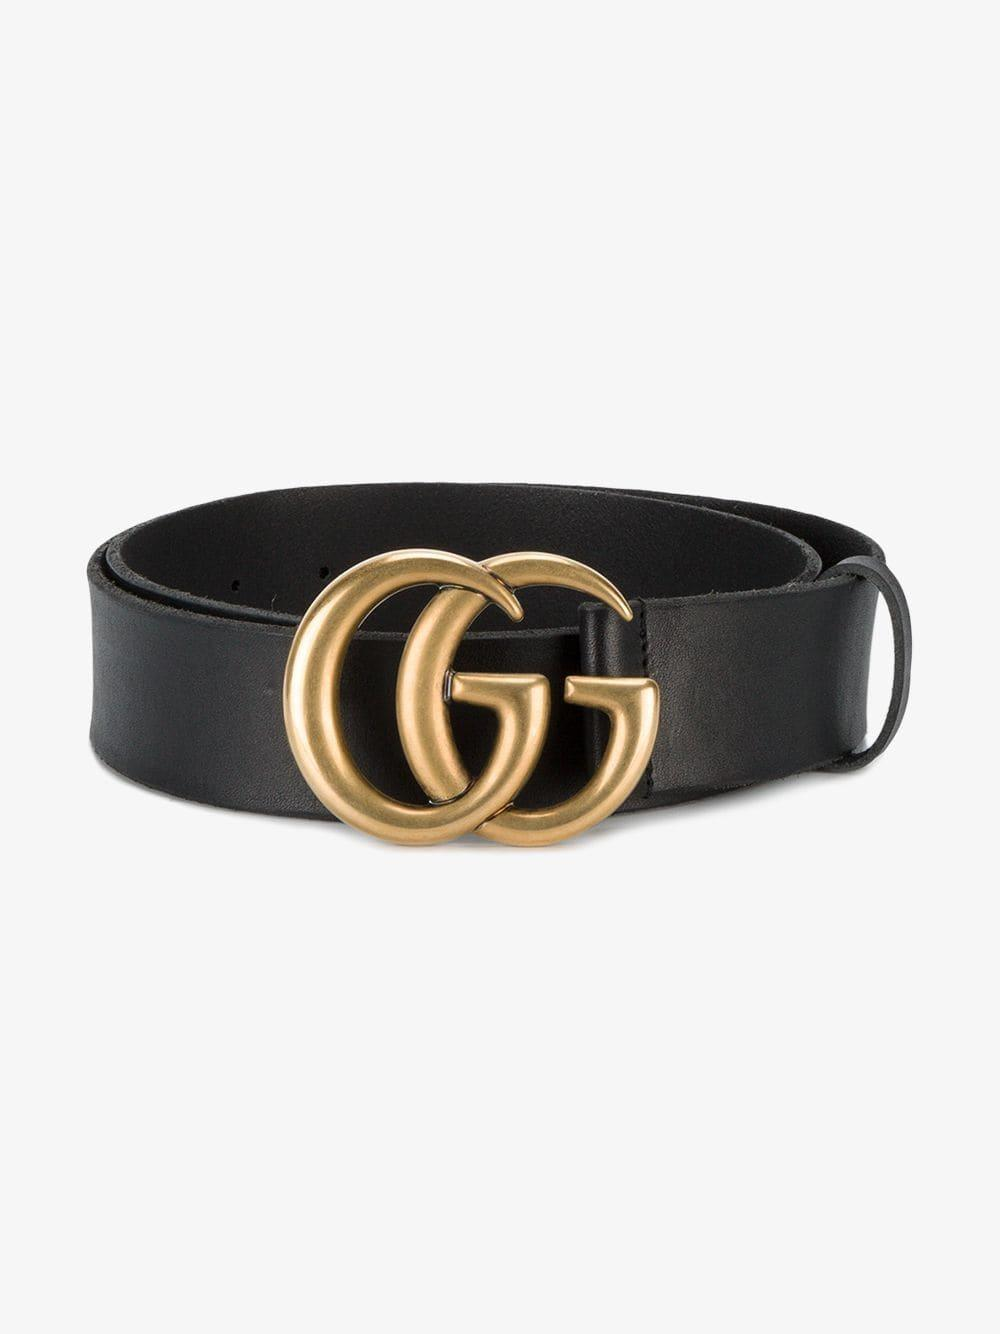 cc94d7bbb2d3c Gucci  double G  Belt in Black - Save 30% - Lyst